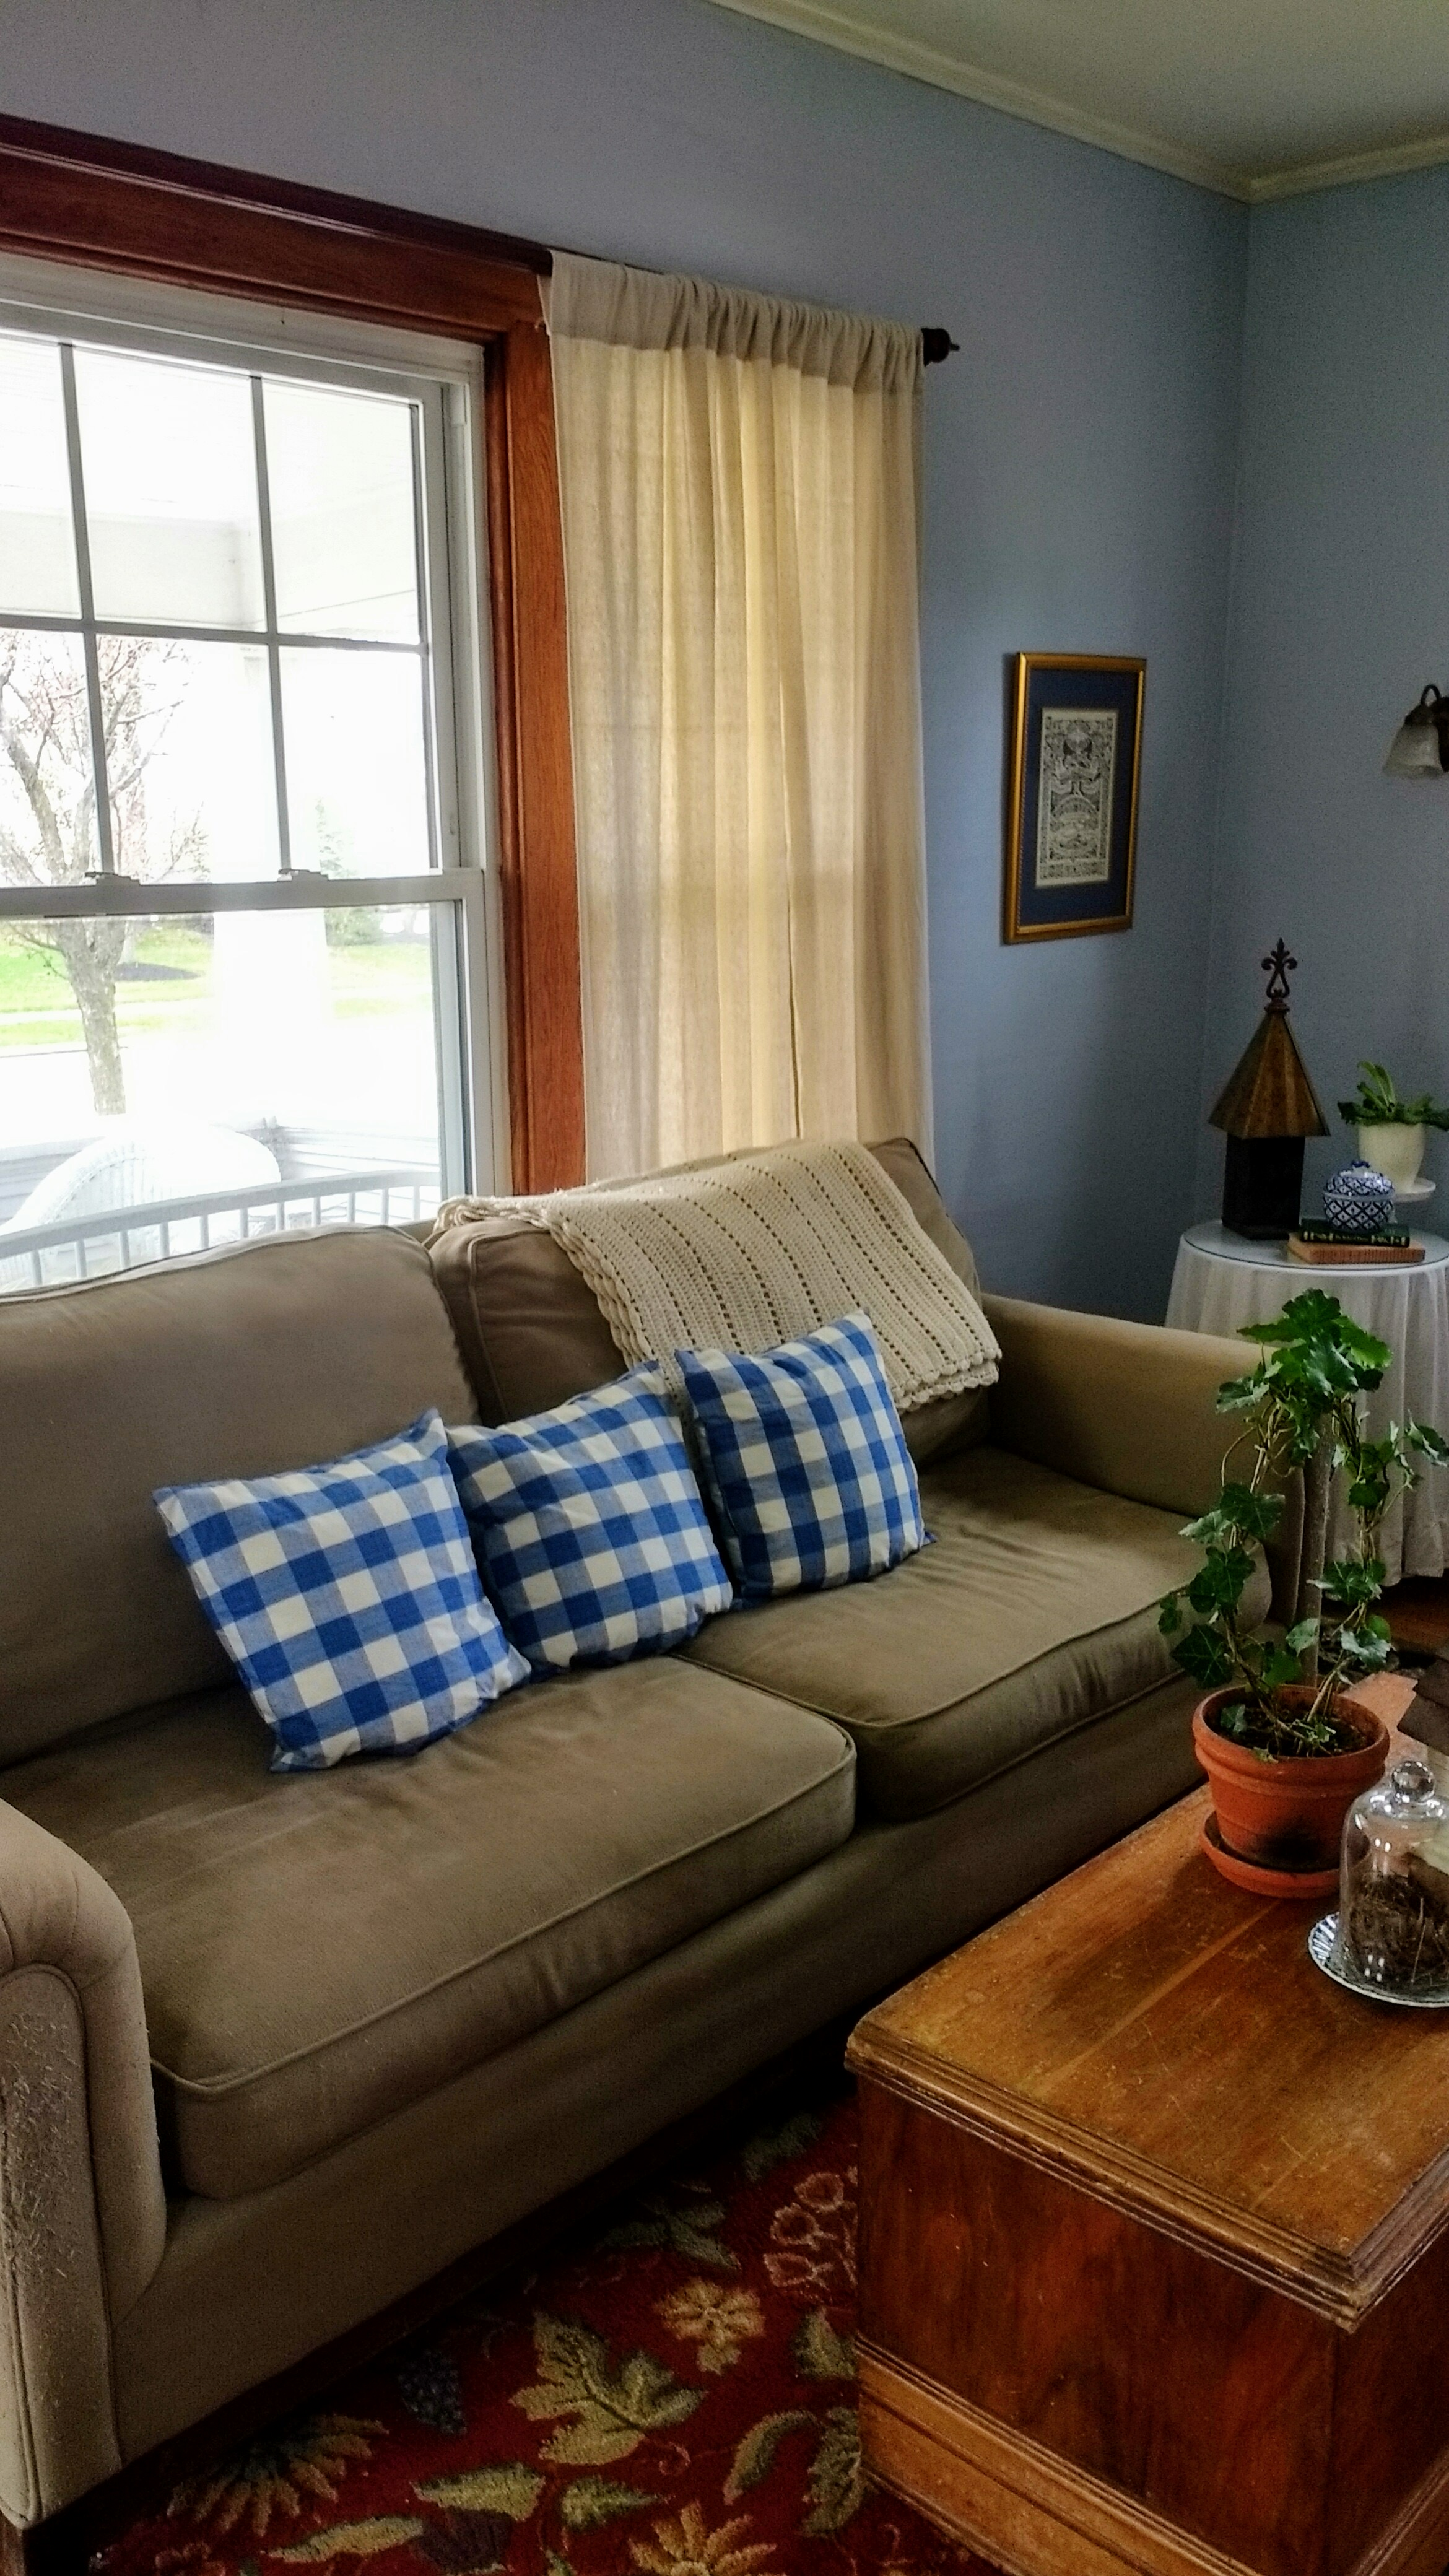 Organized Living Room: Organize Your Living Room The Frugal Way